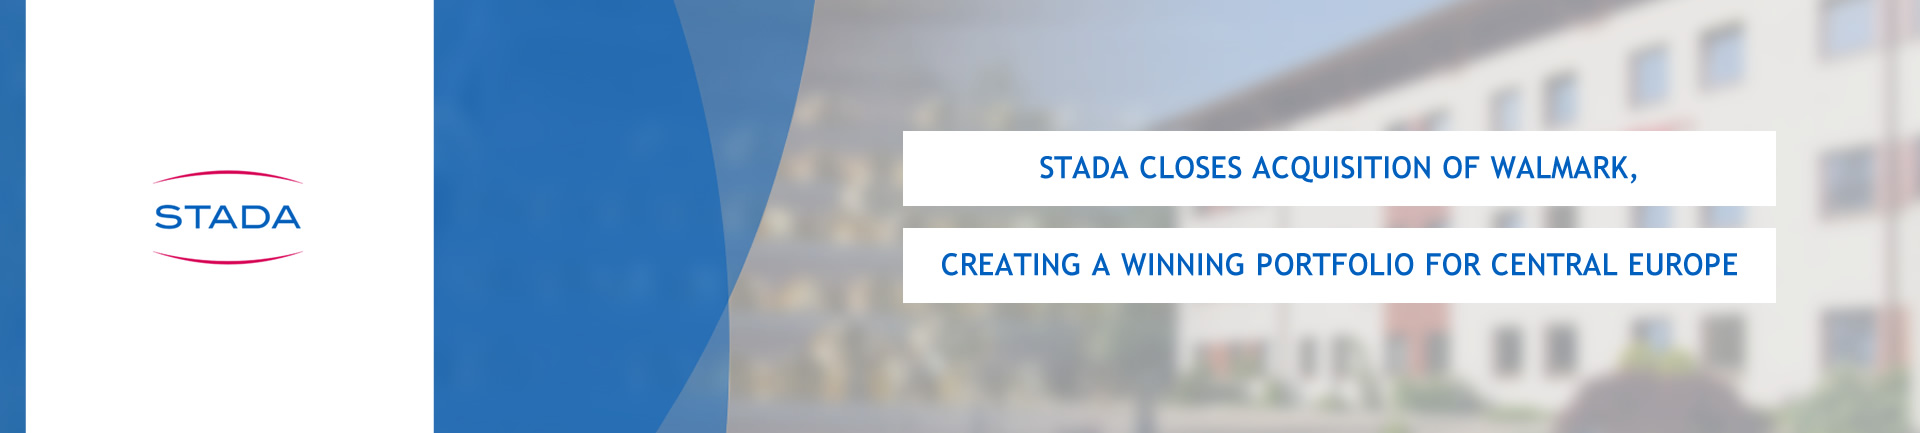 STADA closes acquisition of Walmark, creating a winning portfolio for Central Europe